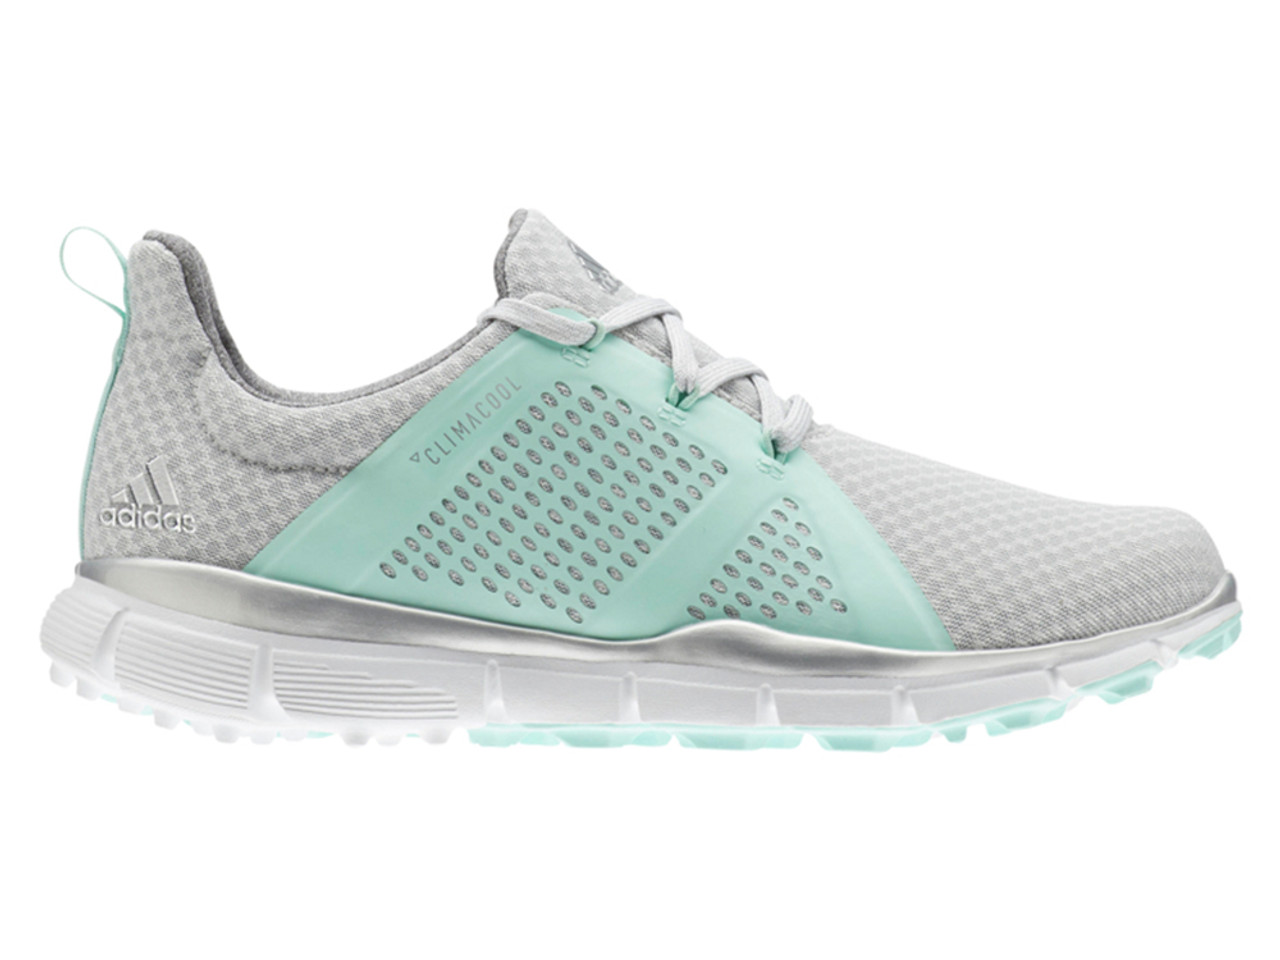 d2978dae7db Adidas W Climacool Cage Golf Shoes - Grey One F17 Clear Mint ...